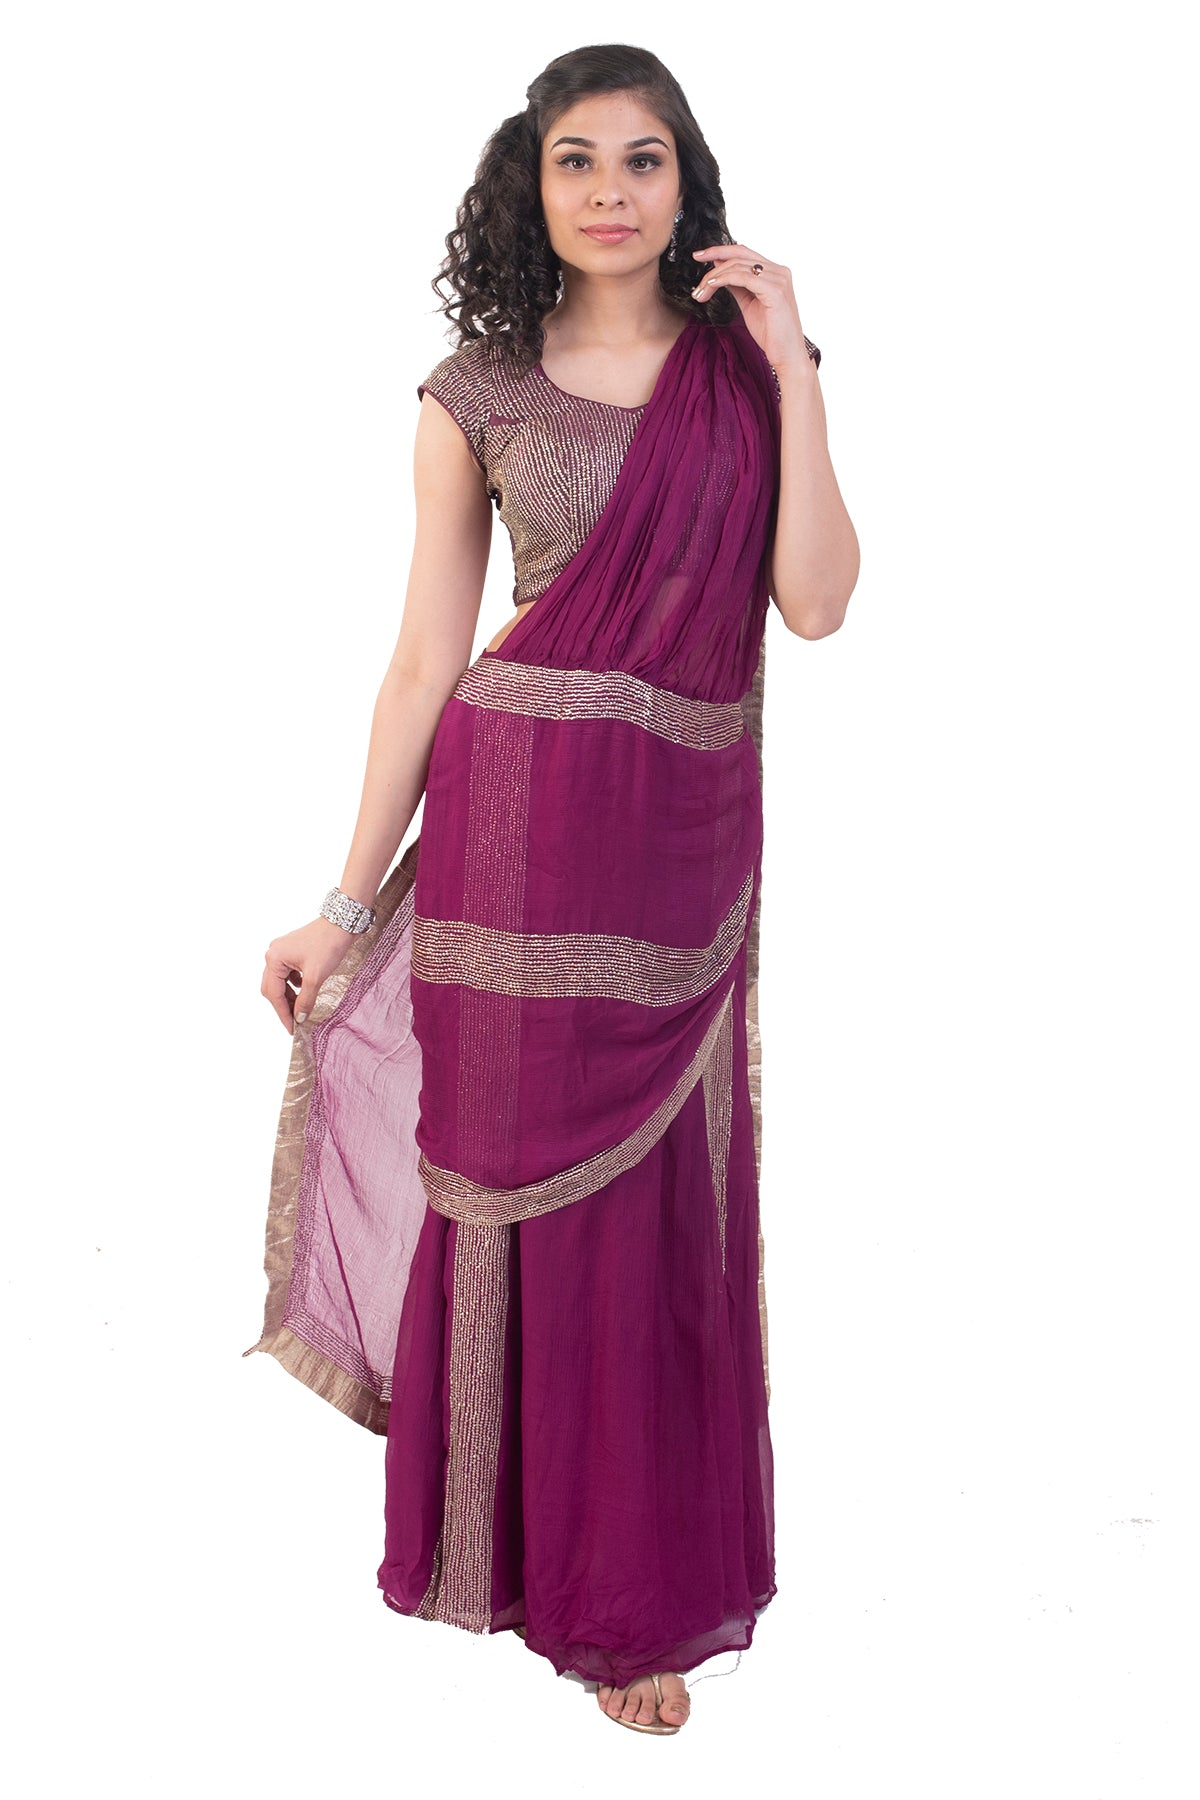 The shimmery look for this outfit shouts glam! The burgundy color and the unique pattern saree is perfect wear for your next event!